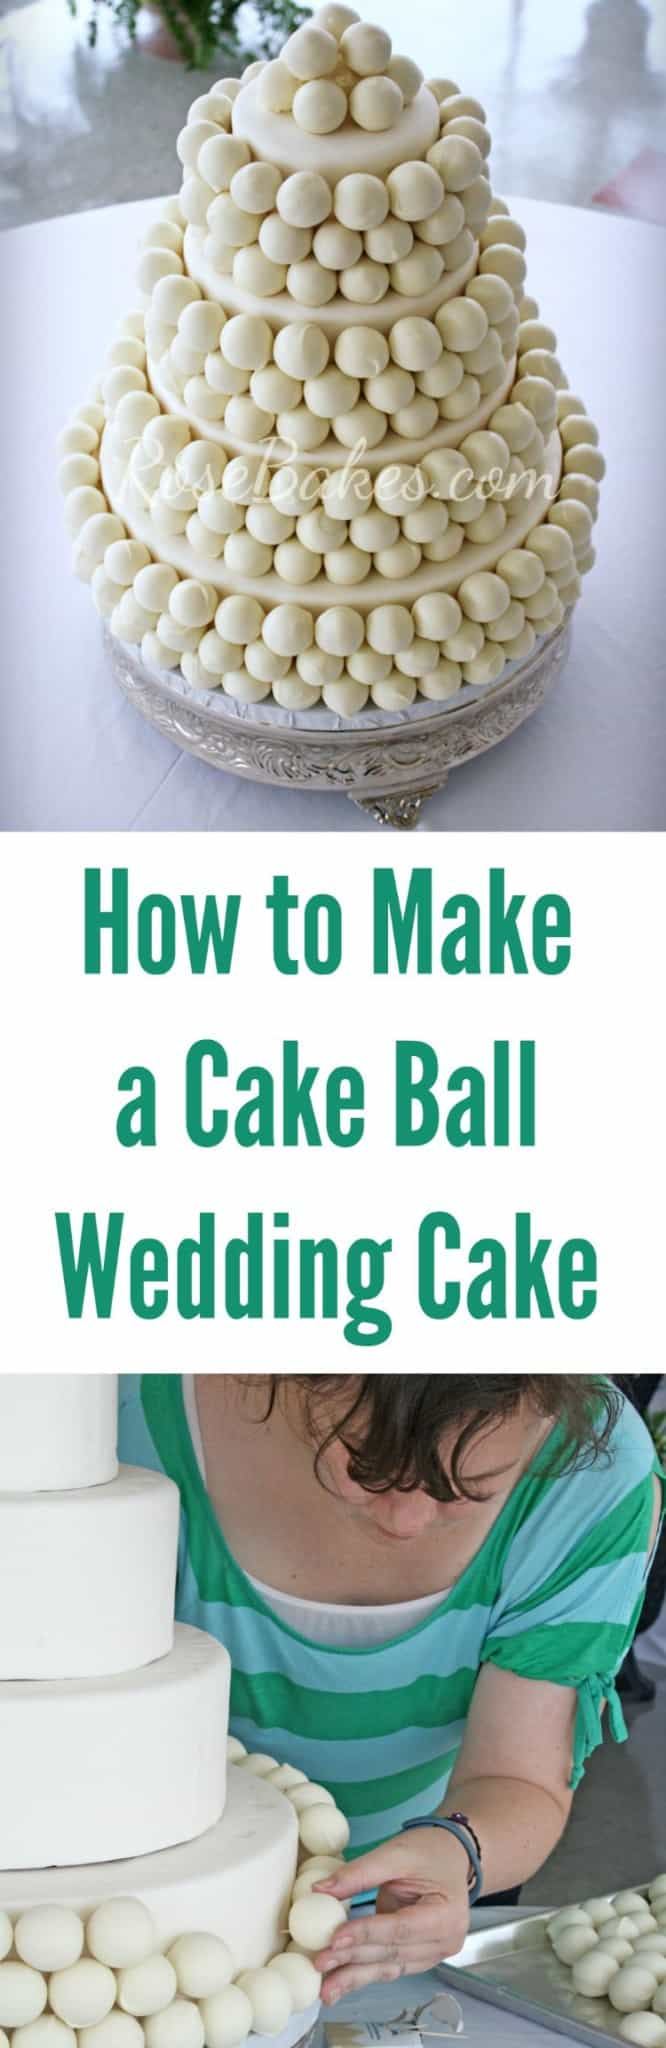 How to Make a Cake Ball Wedding Cake by Rose Bakes